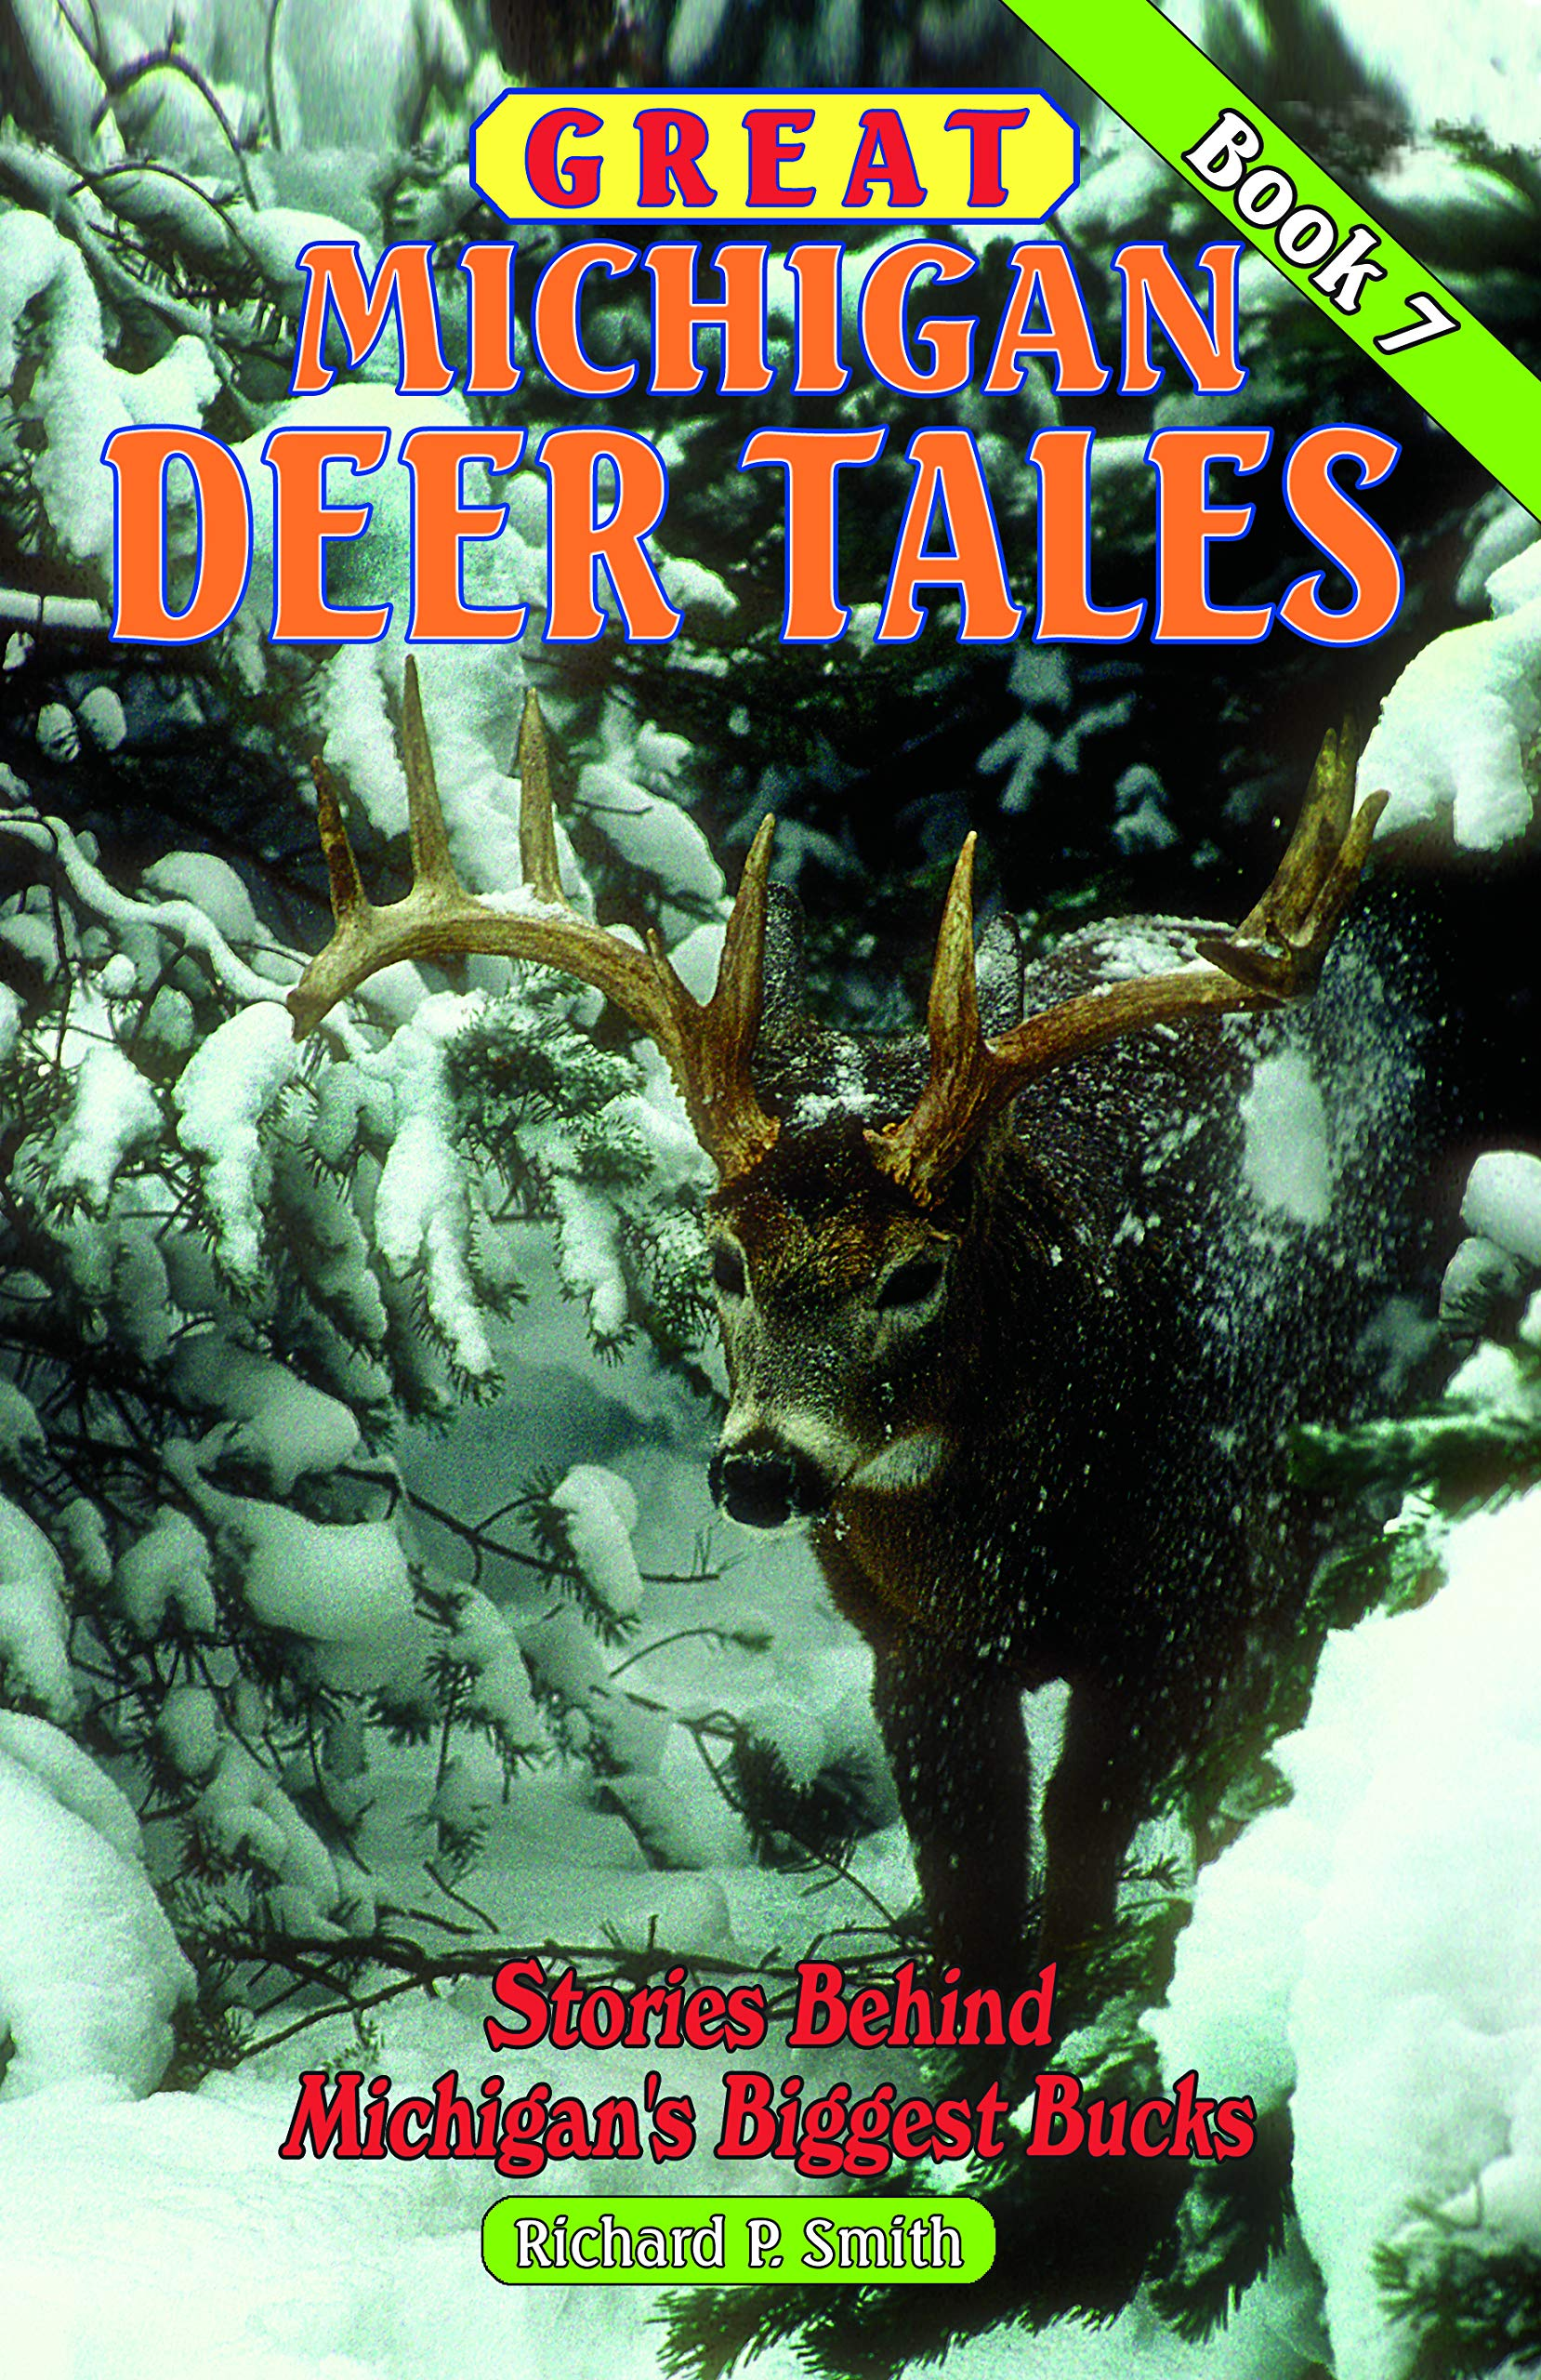 Great Michigan Deer Tales 2: Stories Behind Michigans Biggest Bucks